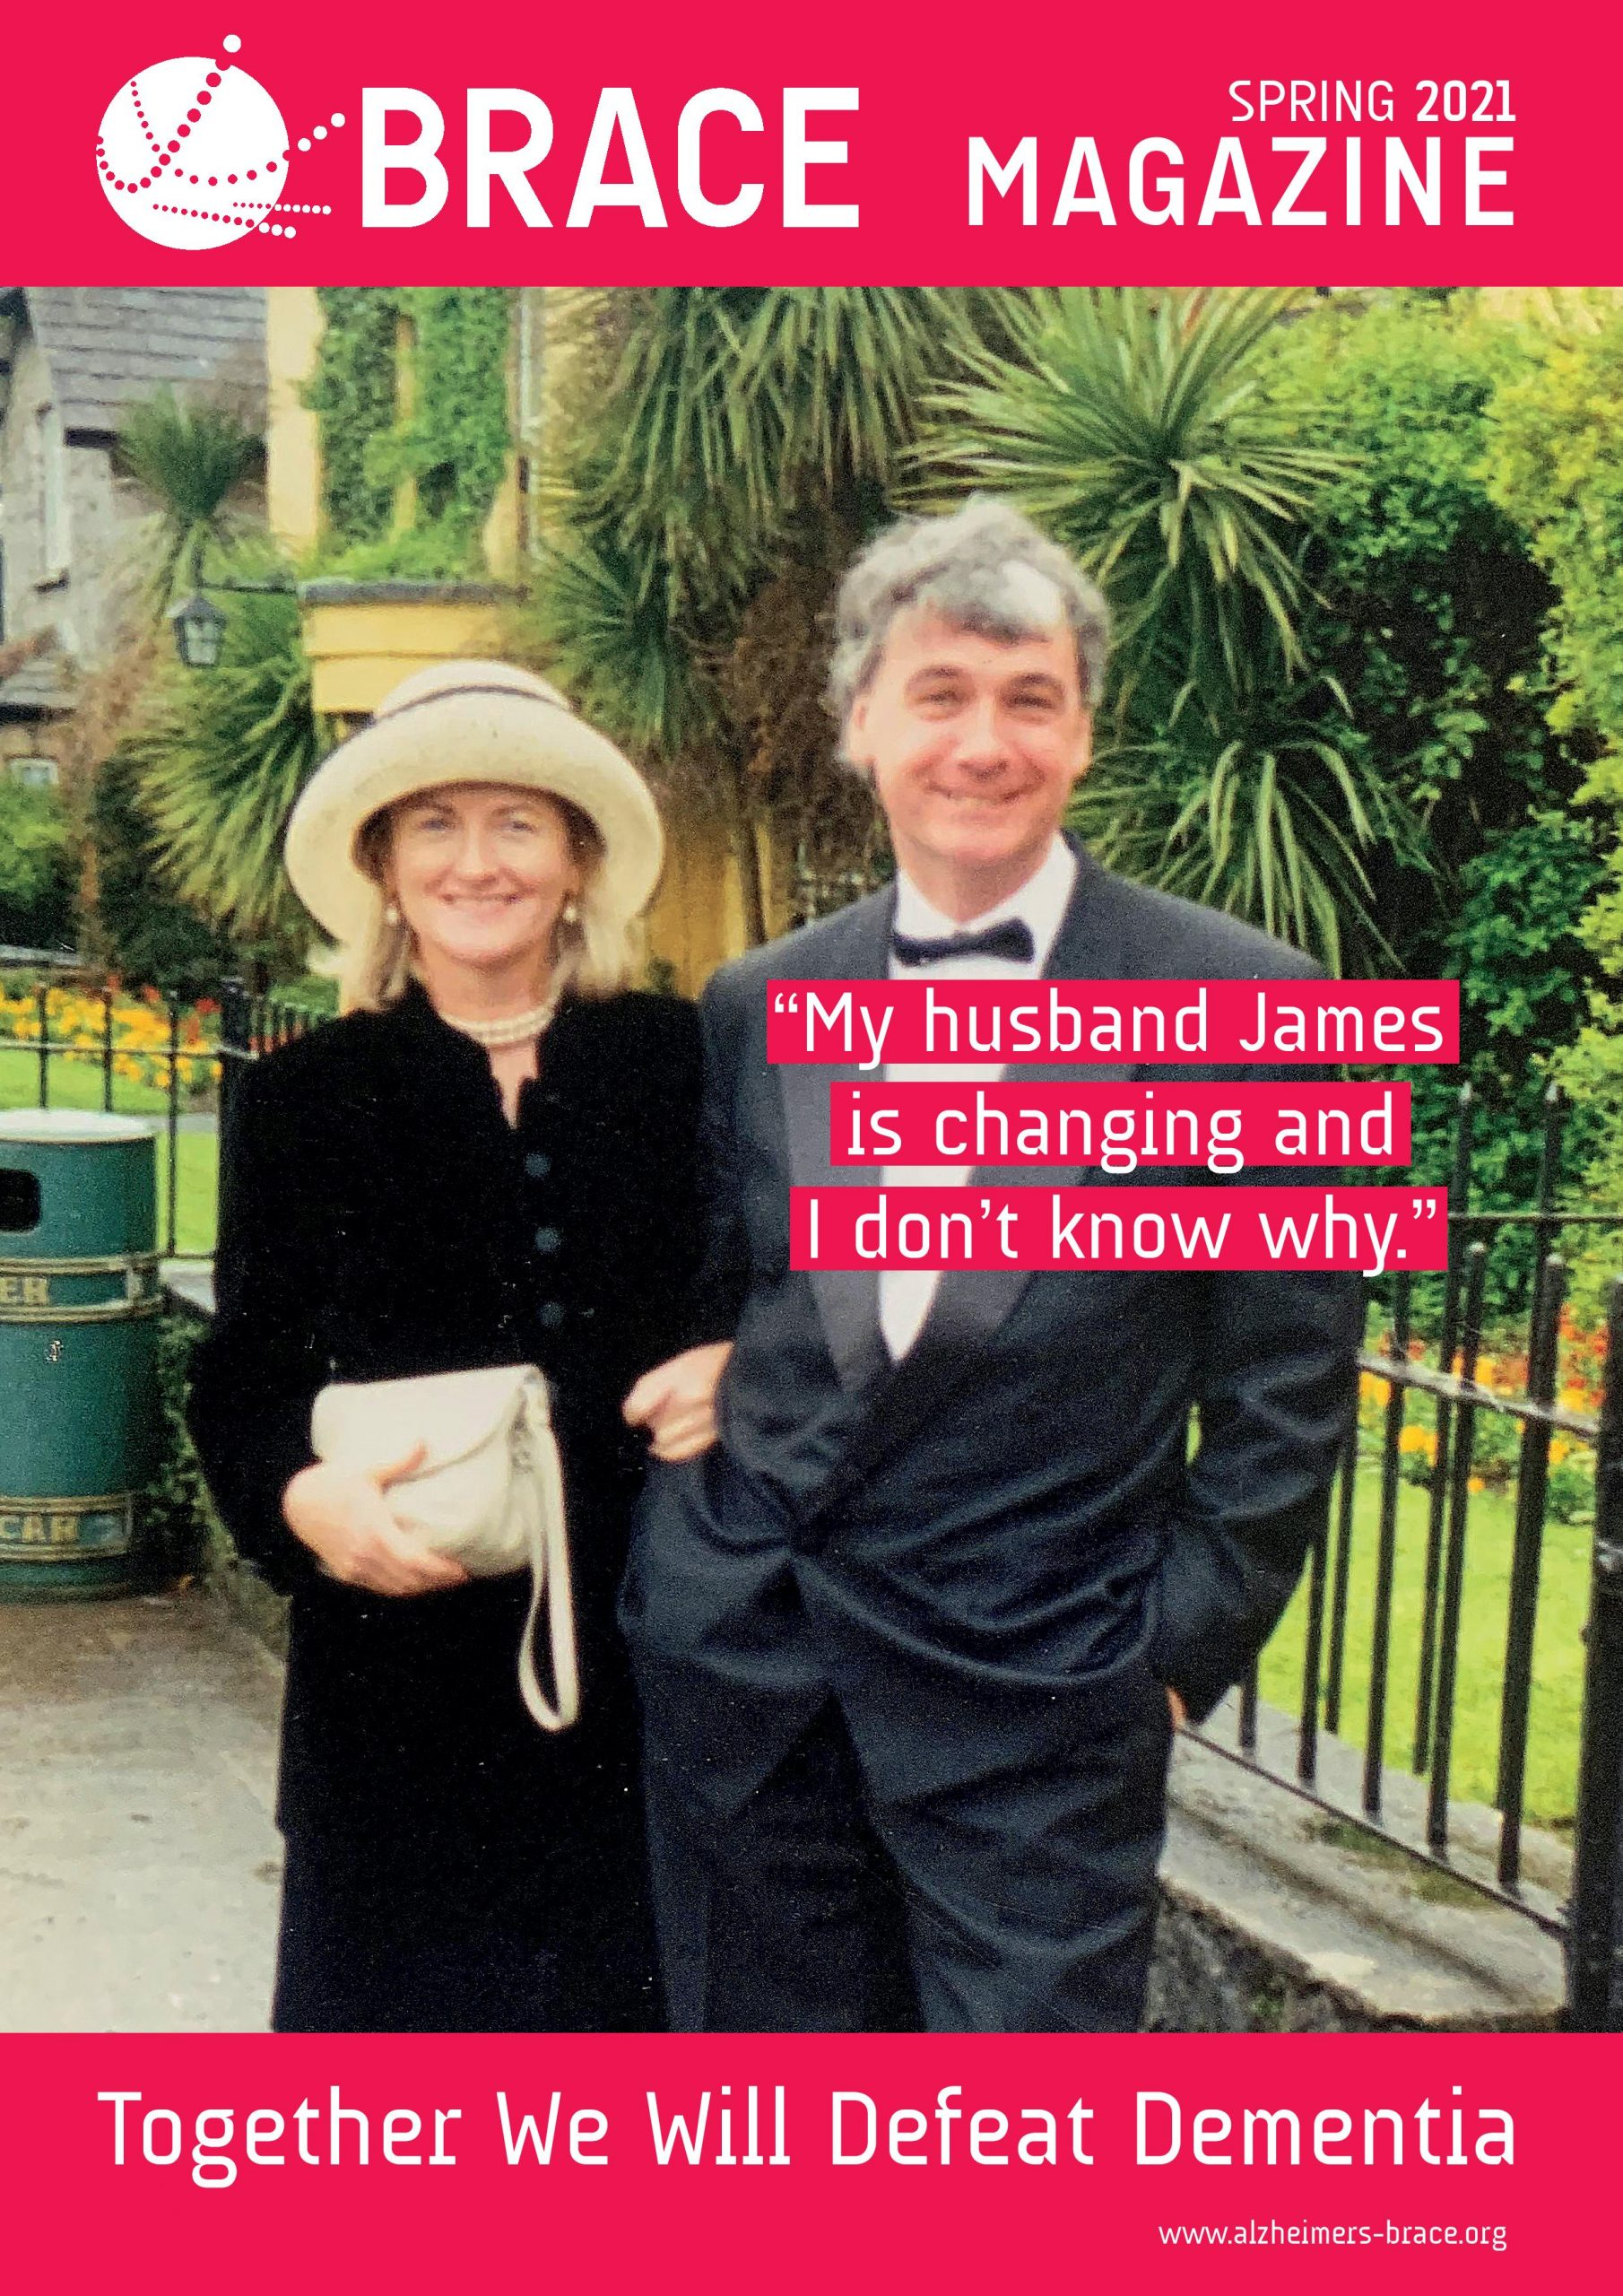 Spring 2021 magazine front cover. A man and a woman standing closely together smiling.